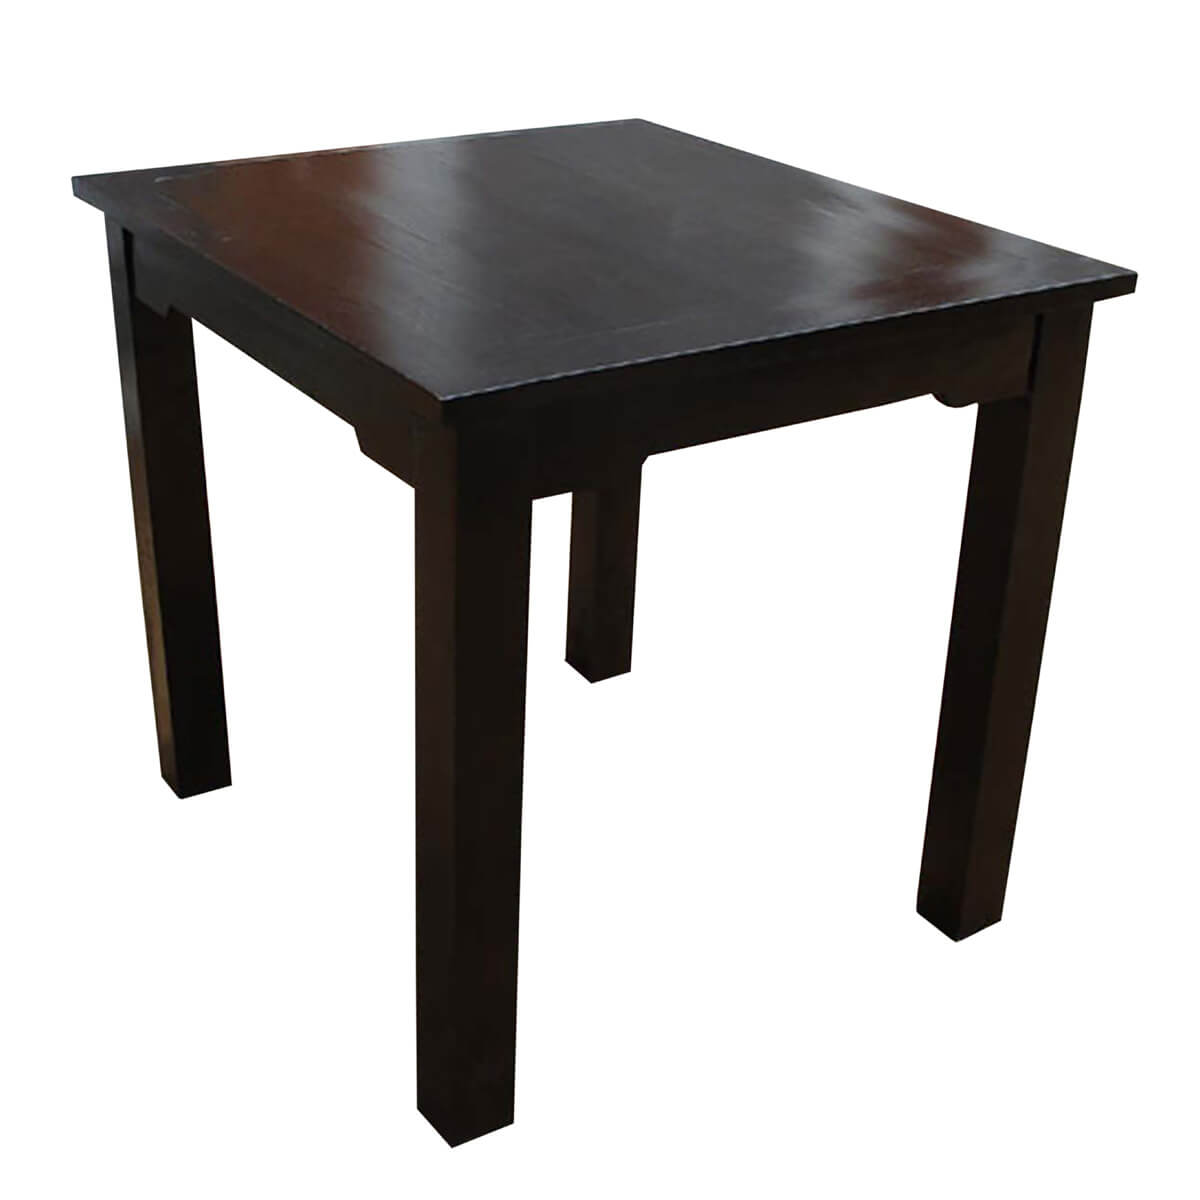 Finish Tables Casual Square Dining Table W Ebony Finish Made Of Solid Wood